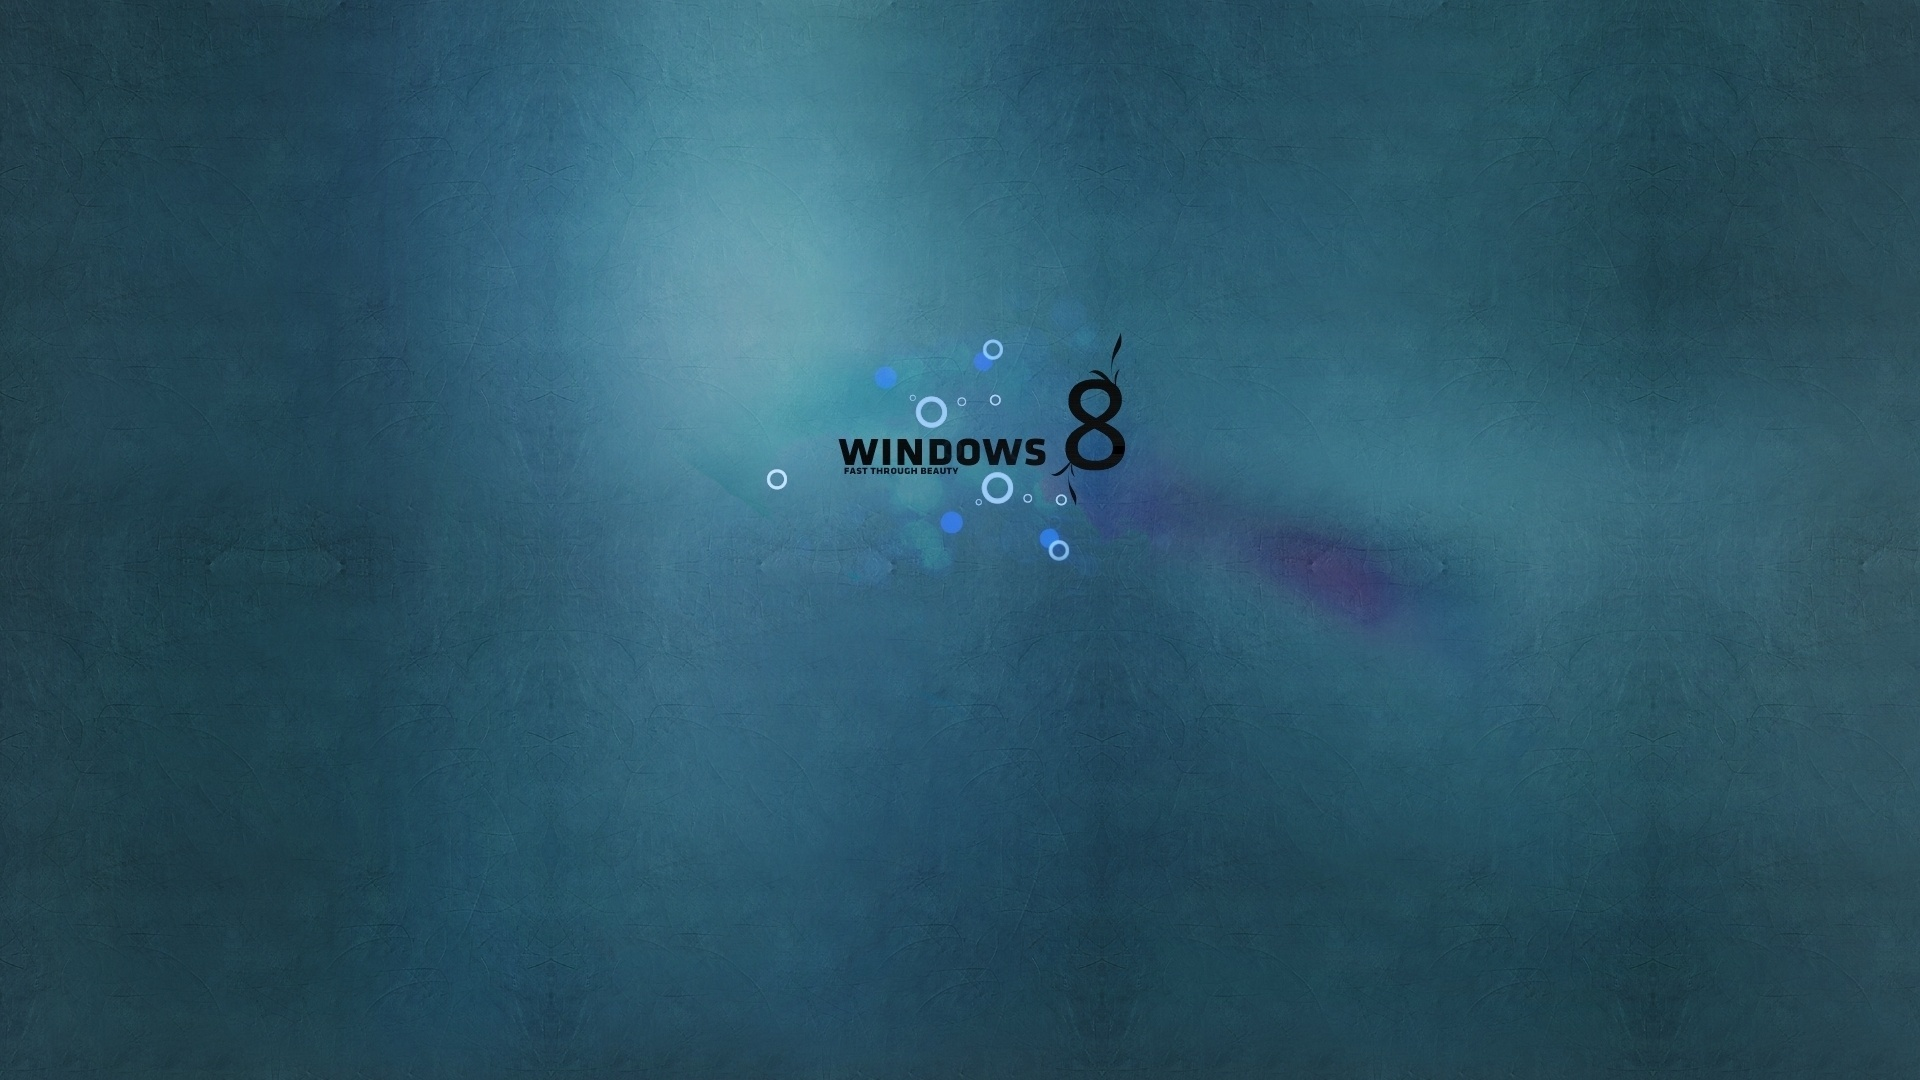 Windows 8 Black Wallpapers 34 Wallpapers Adorable Wallpapers